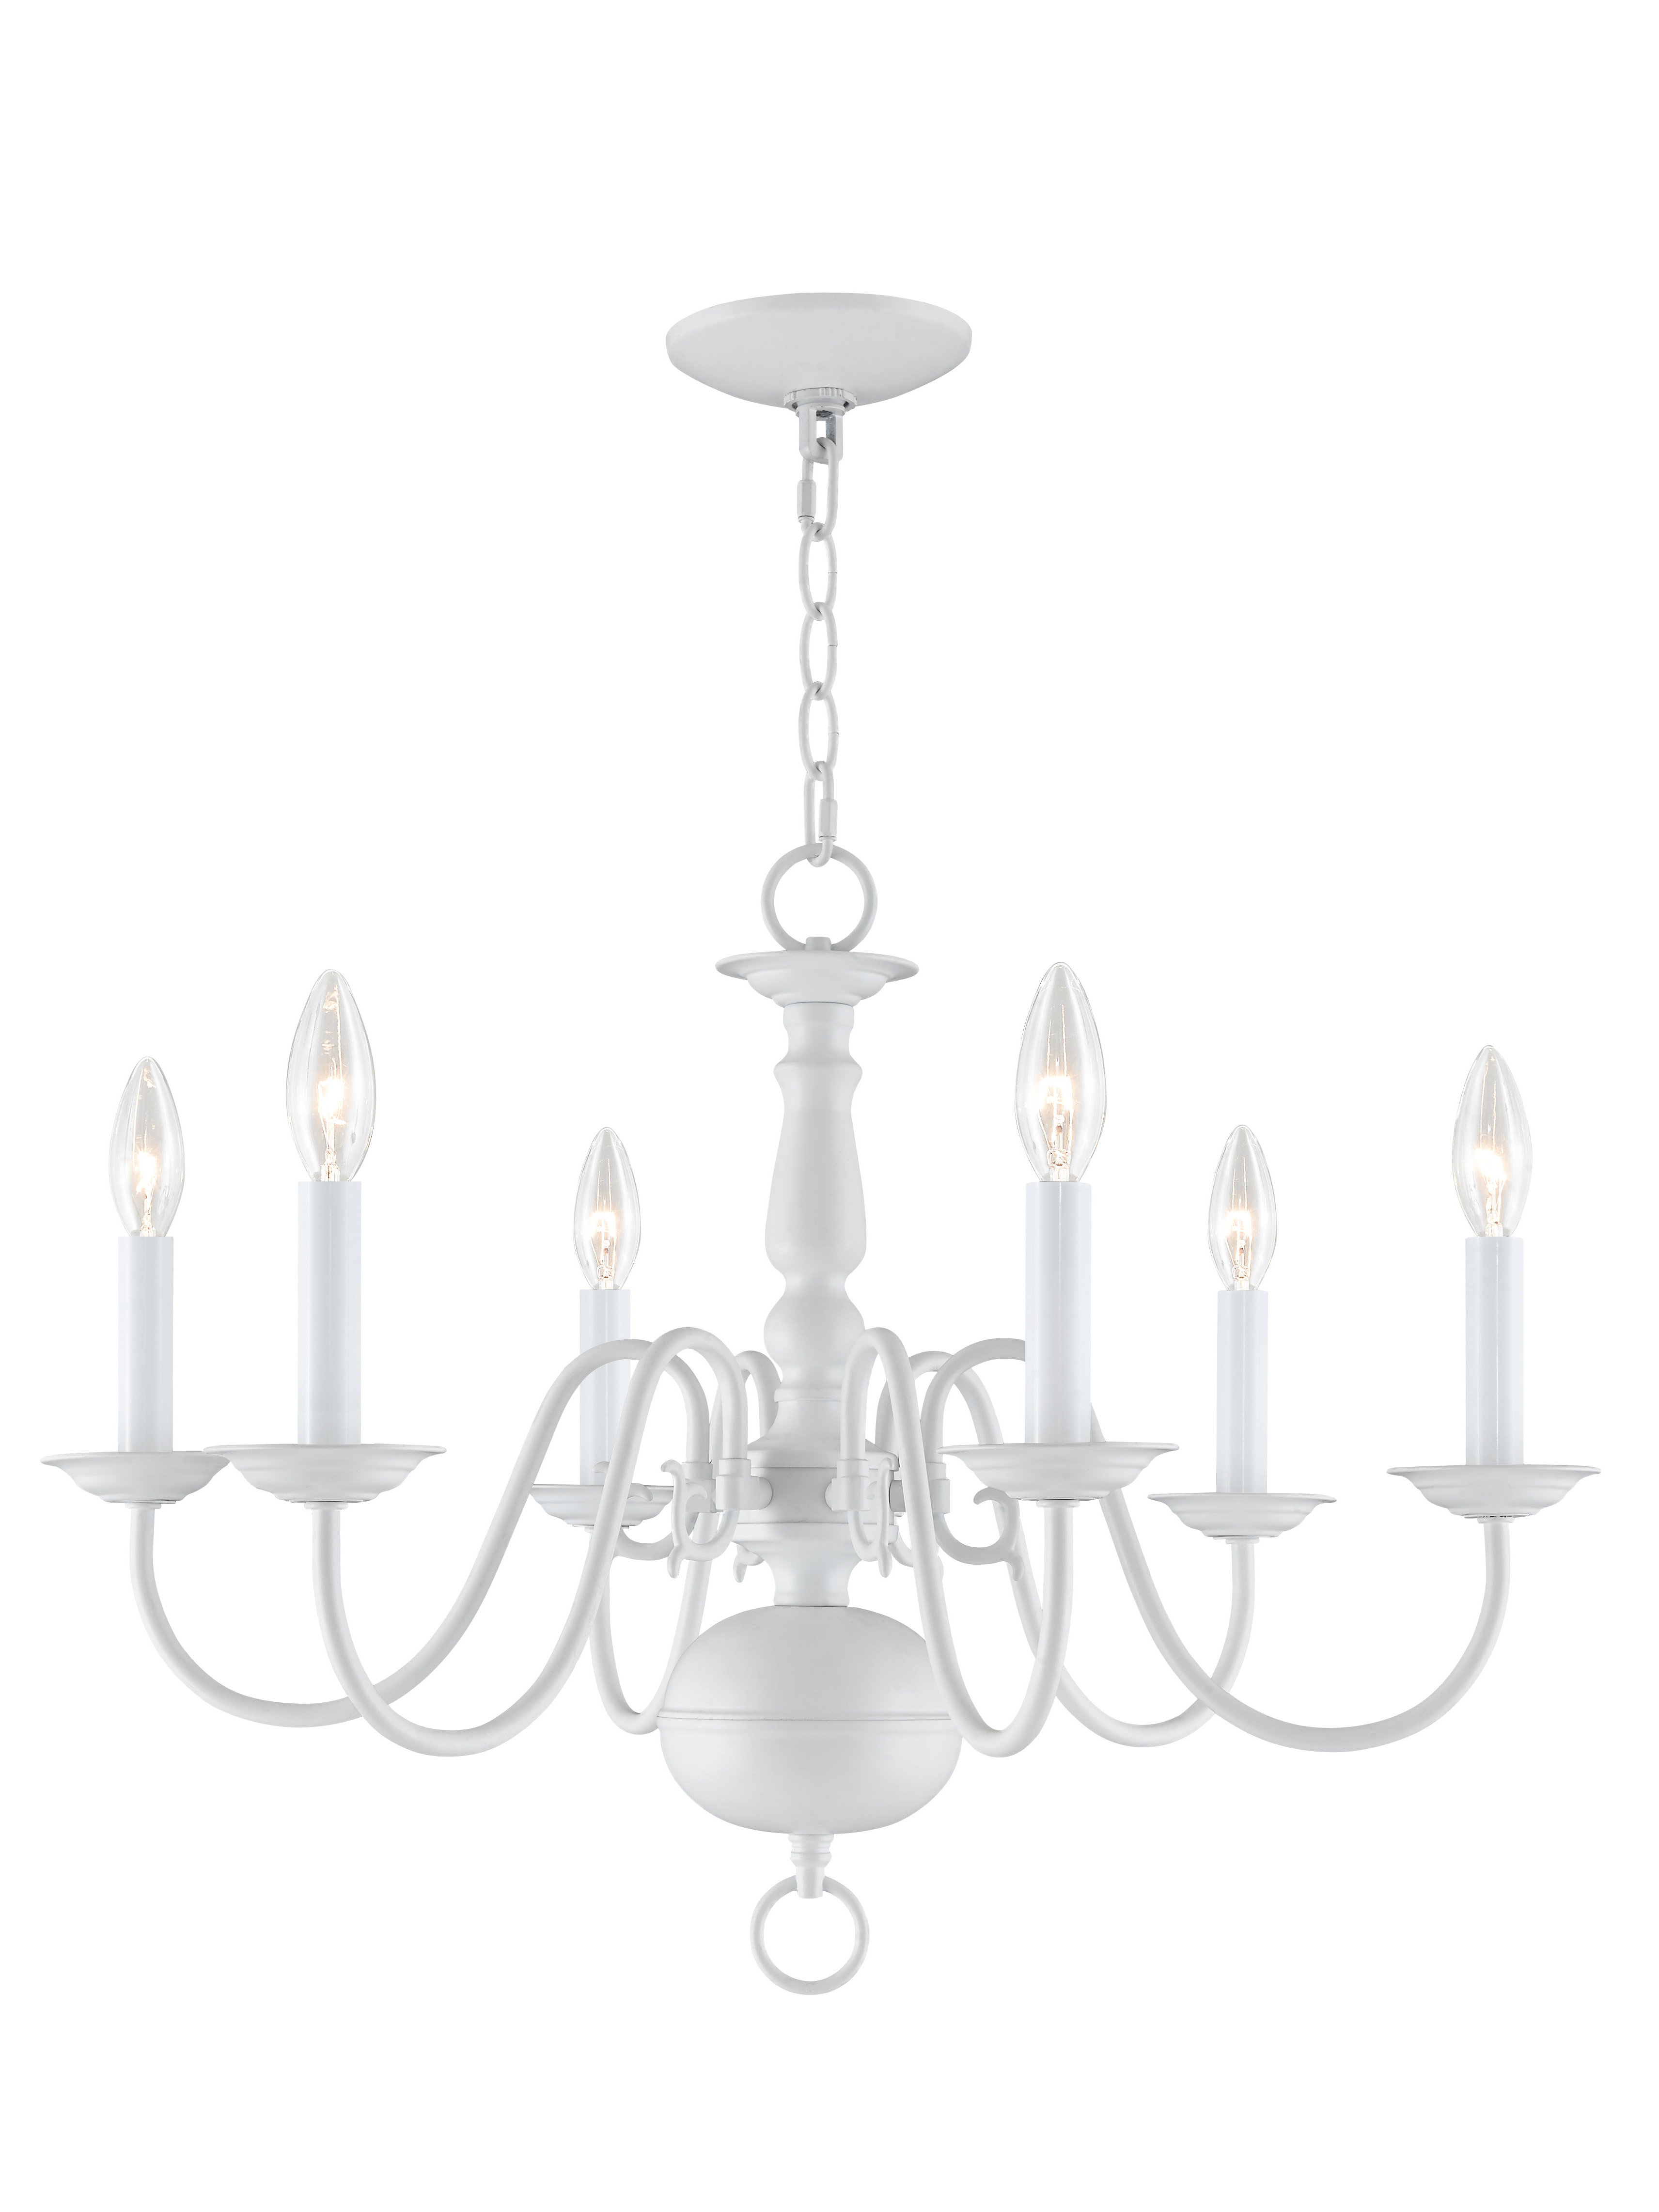 Berger 5 Light Candle Style Chandeliers For Widely Used Three Posts Allensby 6 Light Candle Style Chandelier (View 20 of 20)